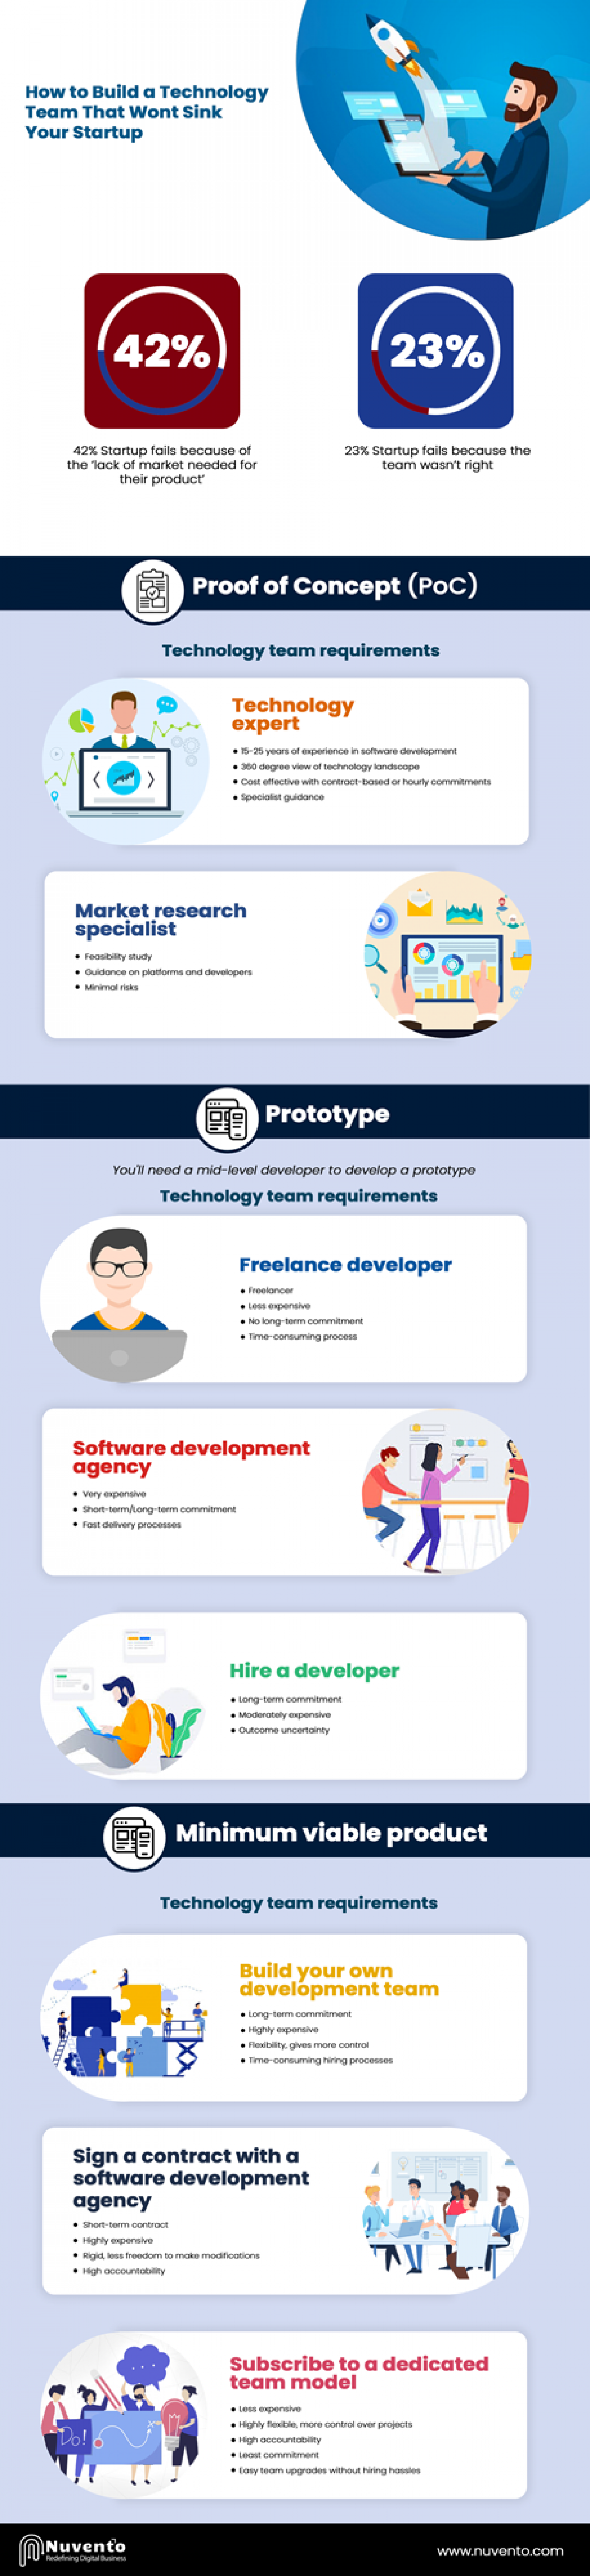 How to build a technology team that wont sink your startup Infographic